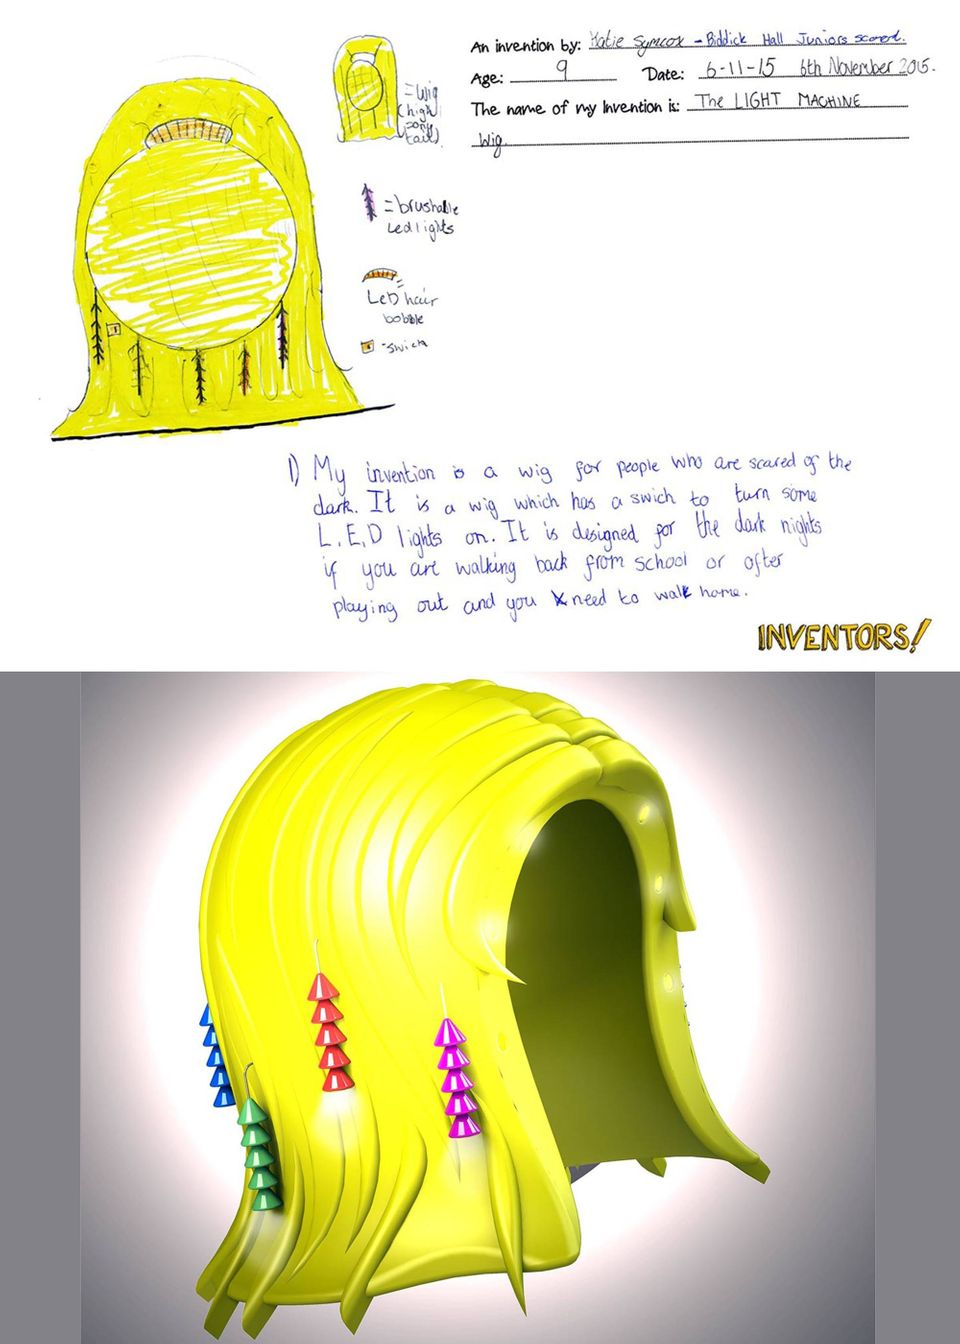 9 awesome inventions courtesy of kids' fascinating imaginations